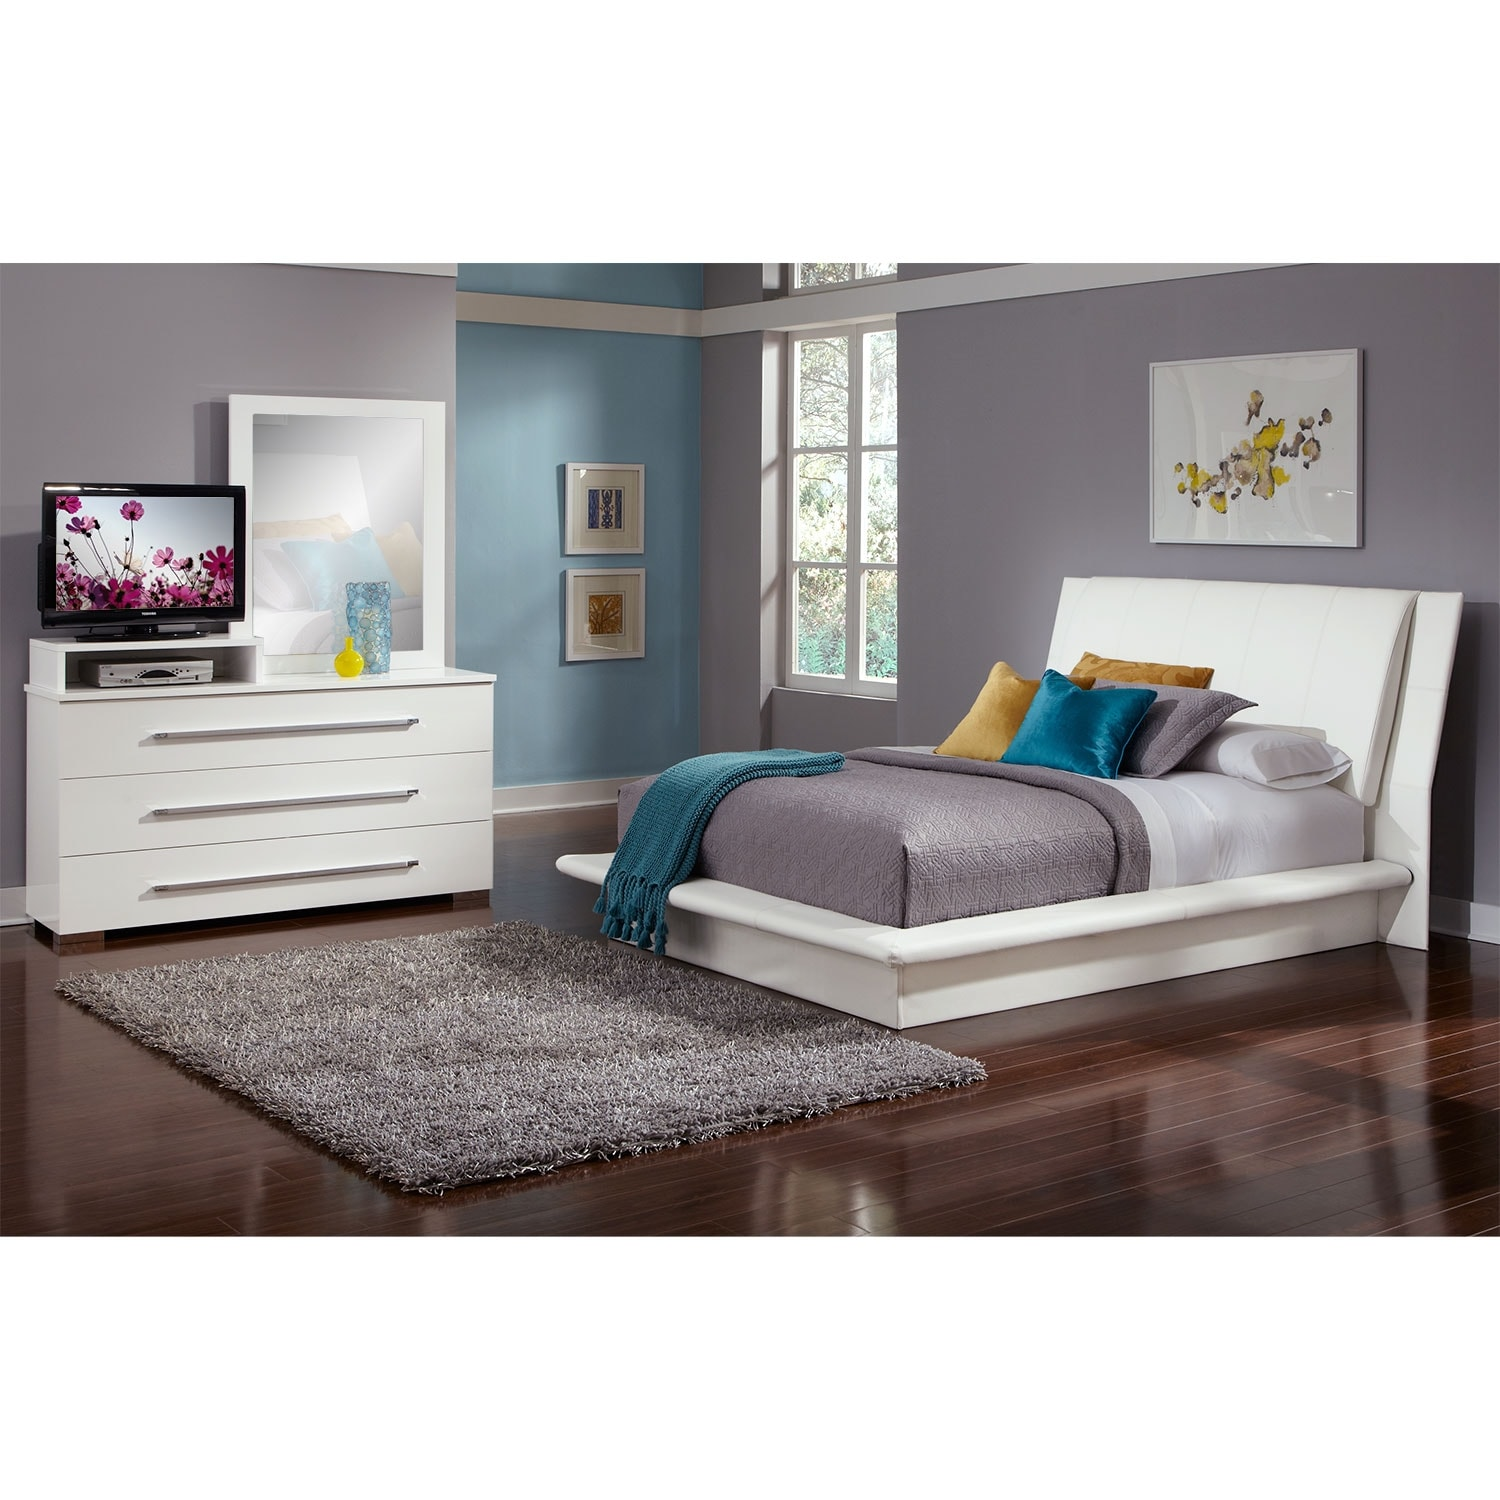 Dimora White 5 Pc. King Bedroom